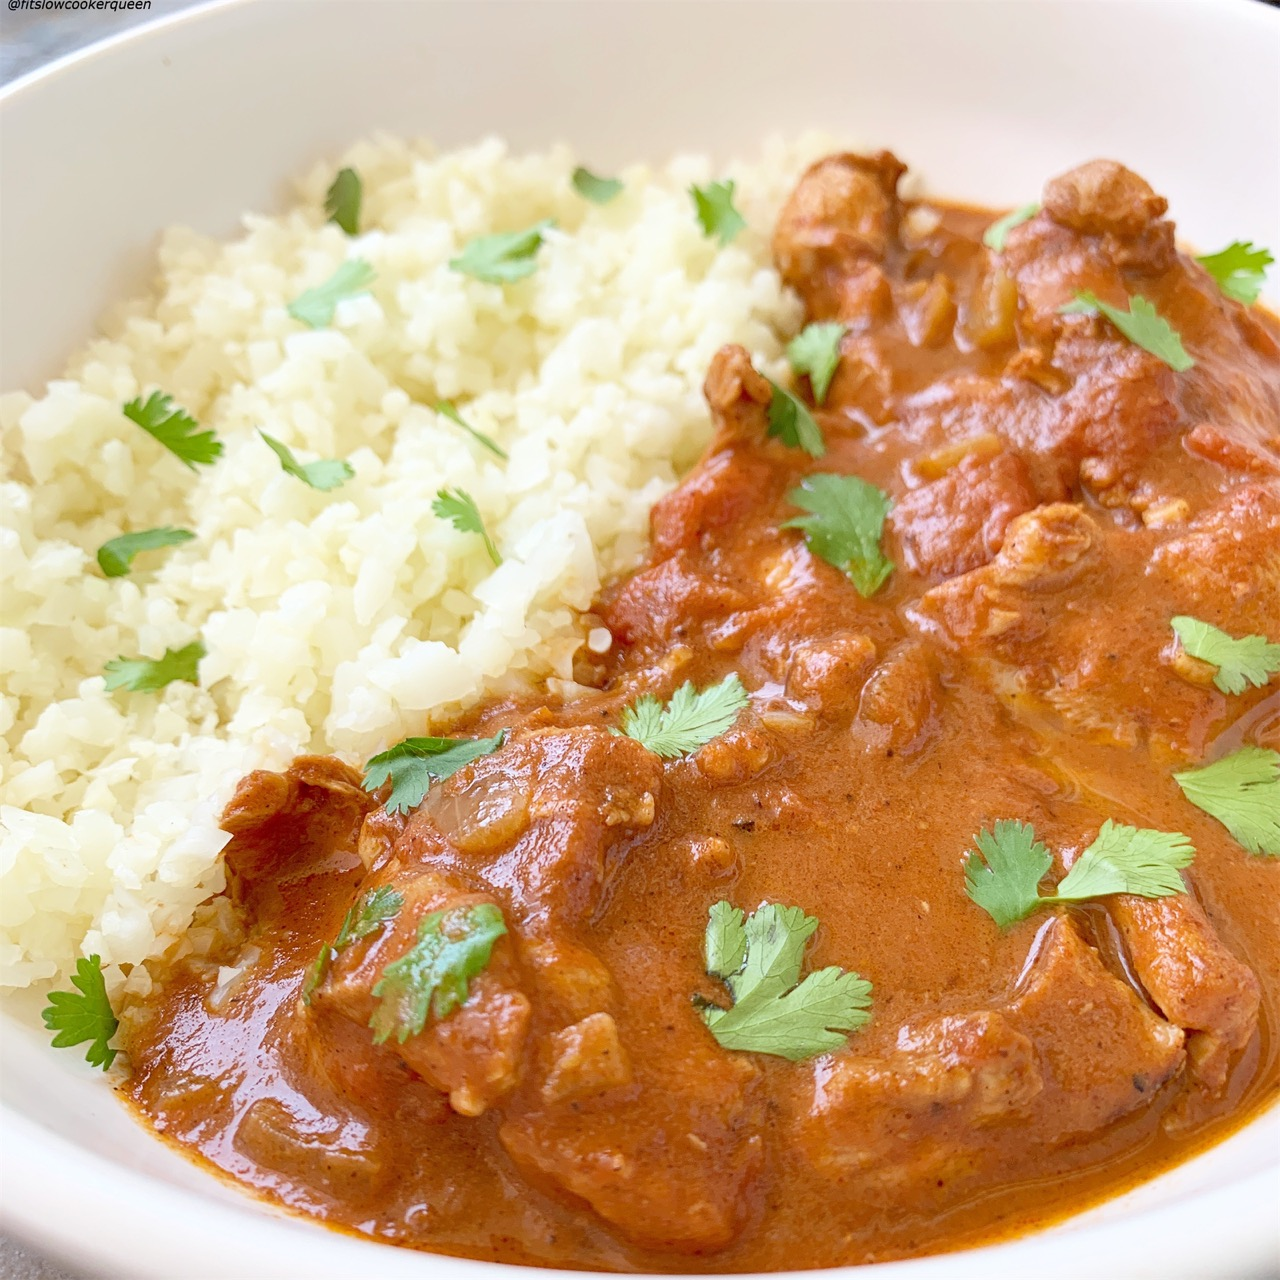 Chicken tikka masala is a popular Indian restaurant dish that's perfect for the slow cooker or pressure cooker. This dairy-free, paleo & whole30 version will have your kitchen smelling amazing.